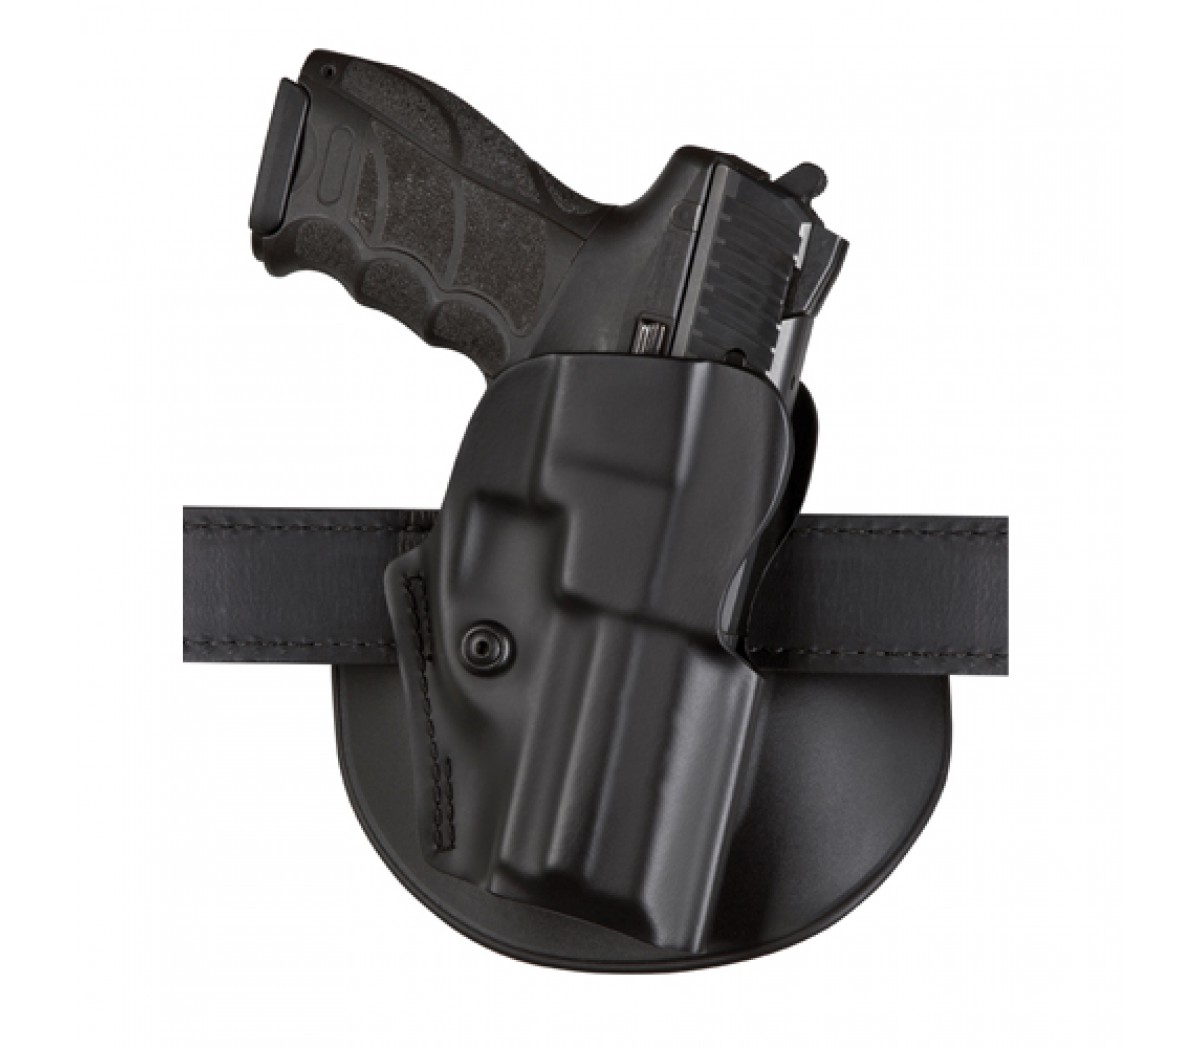 New Safariland and Bianchi holsters for fall 2013 ...